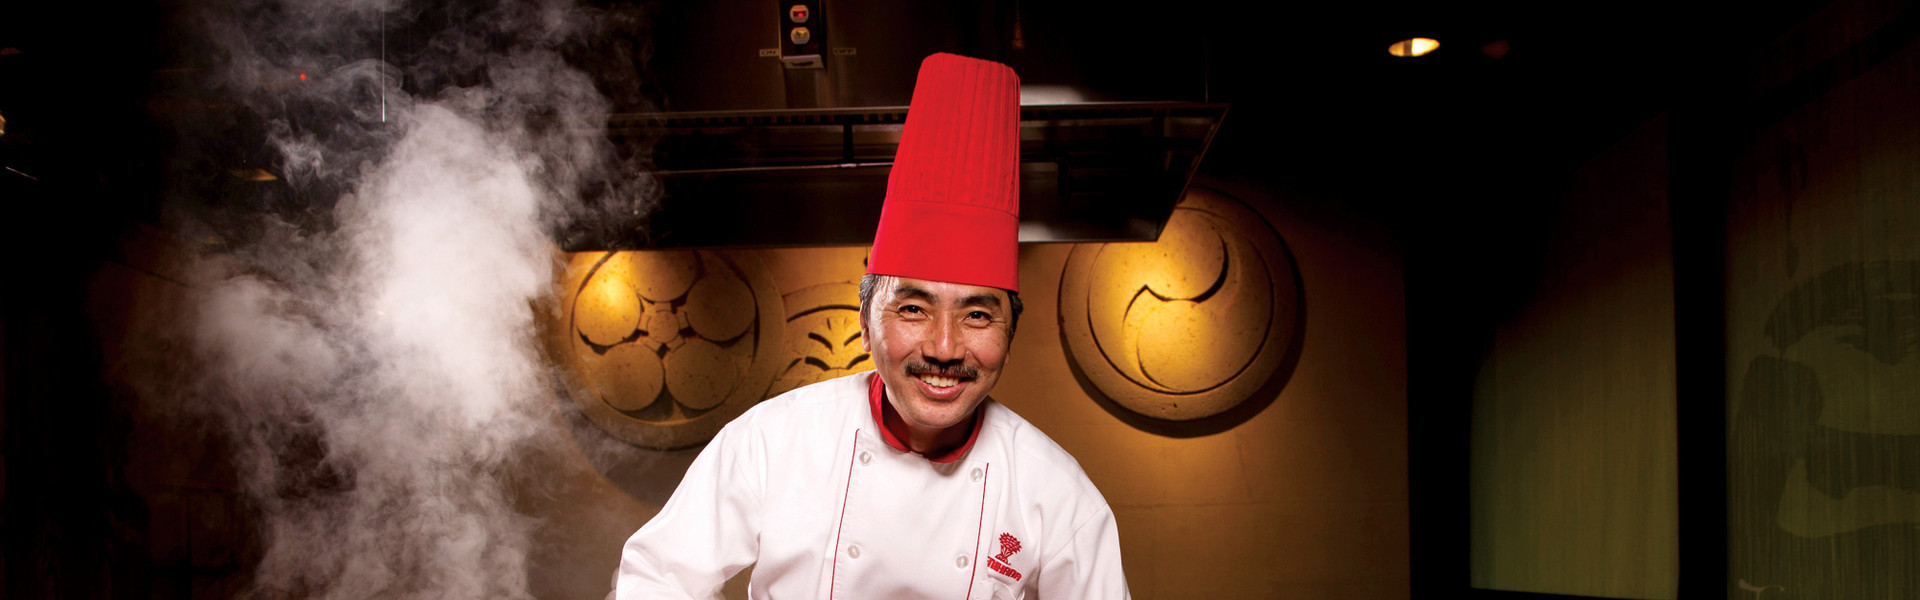 Enjoy a special adventure at the world-famous Benihana Las Vegas - offering delicious Japanese menu options prepared  exhibition-style by master chefs on Teppan grills. Taste the Benihana Las Vegas difference at Westgate Las Vegas Resort & Casino!